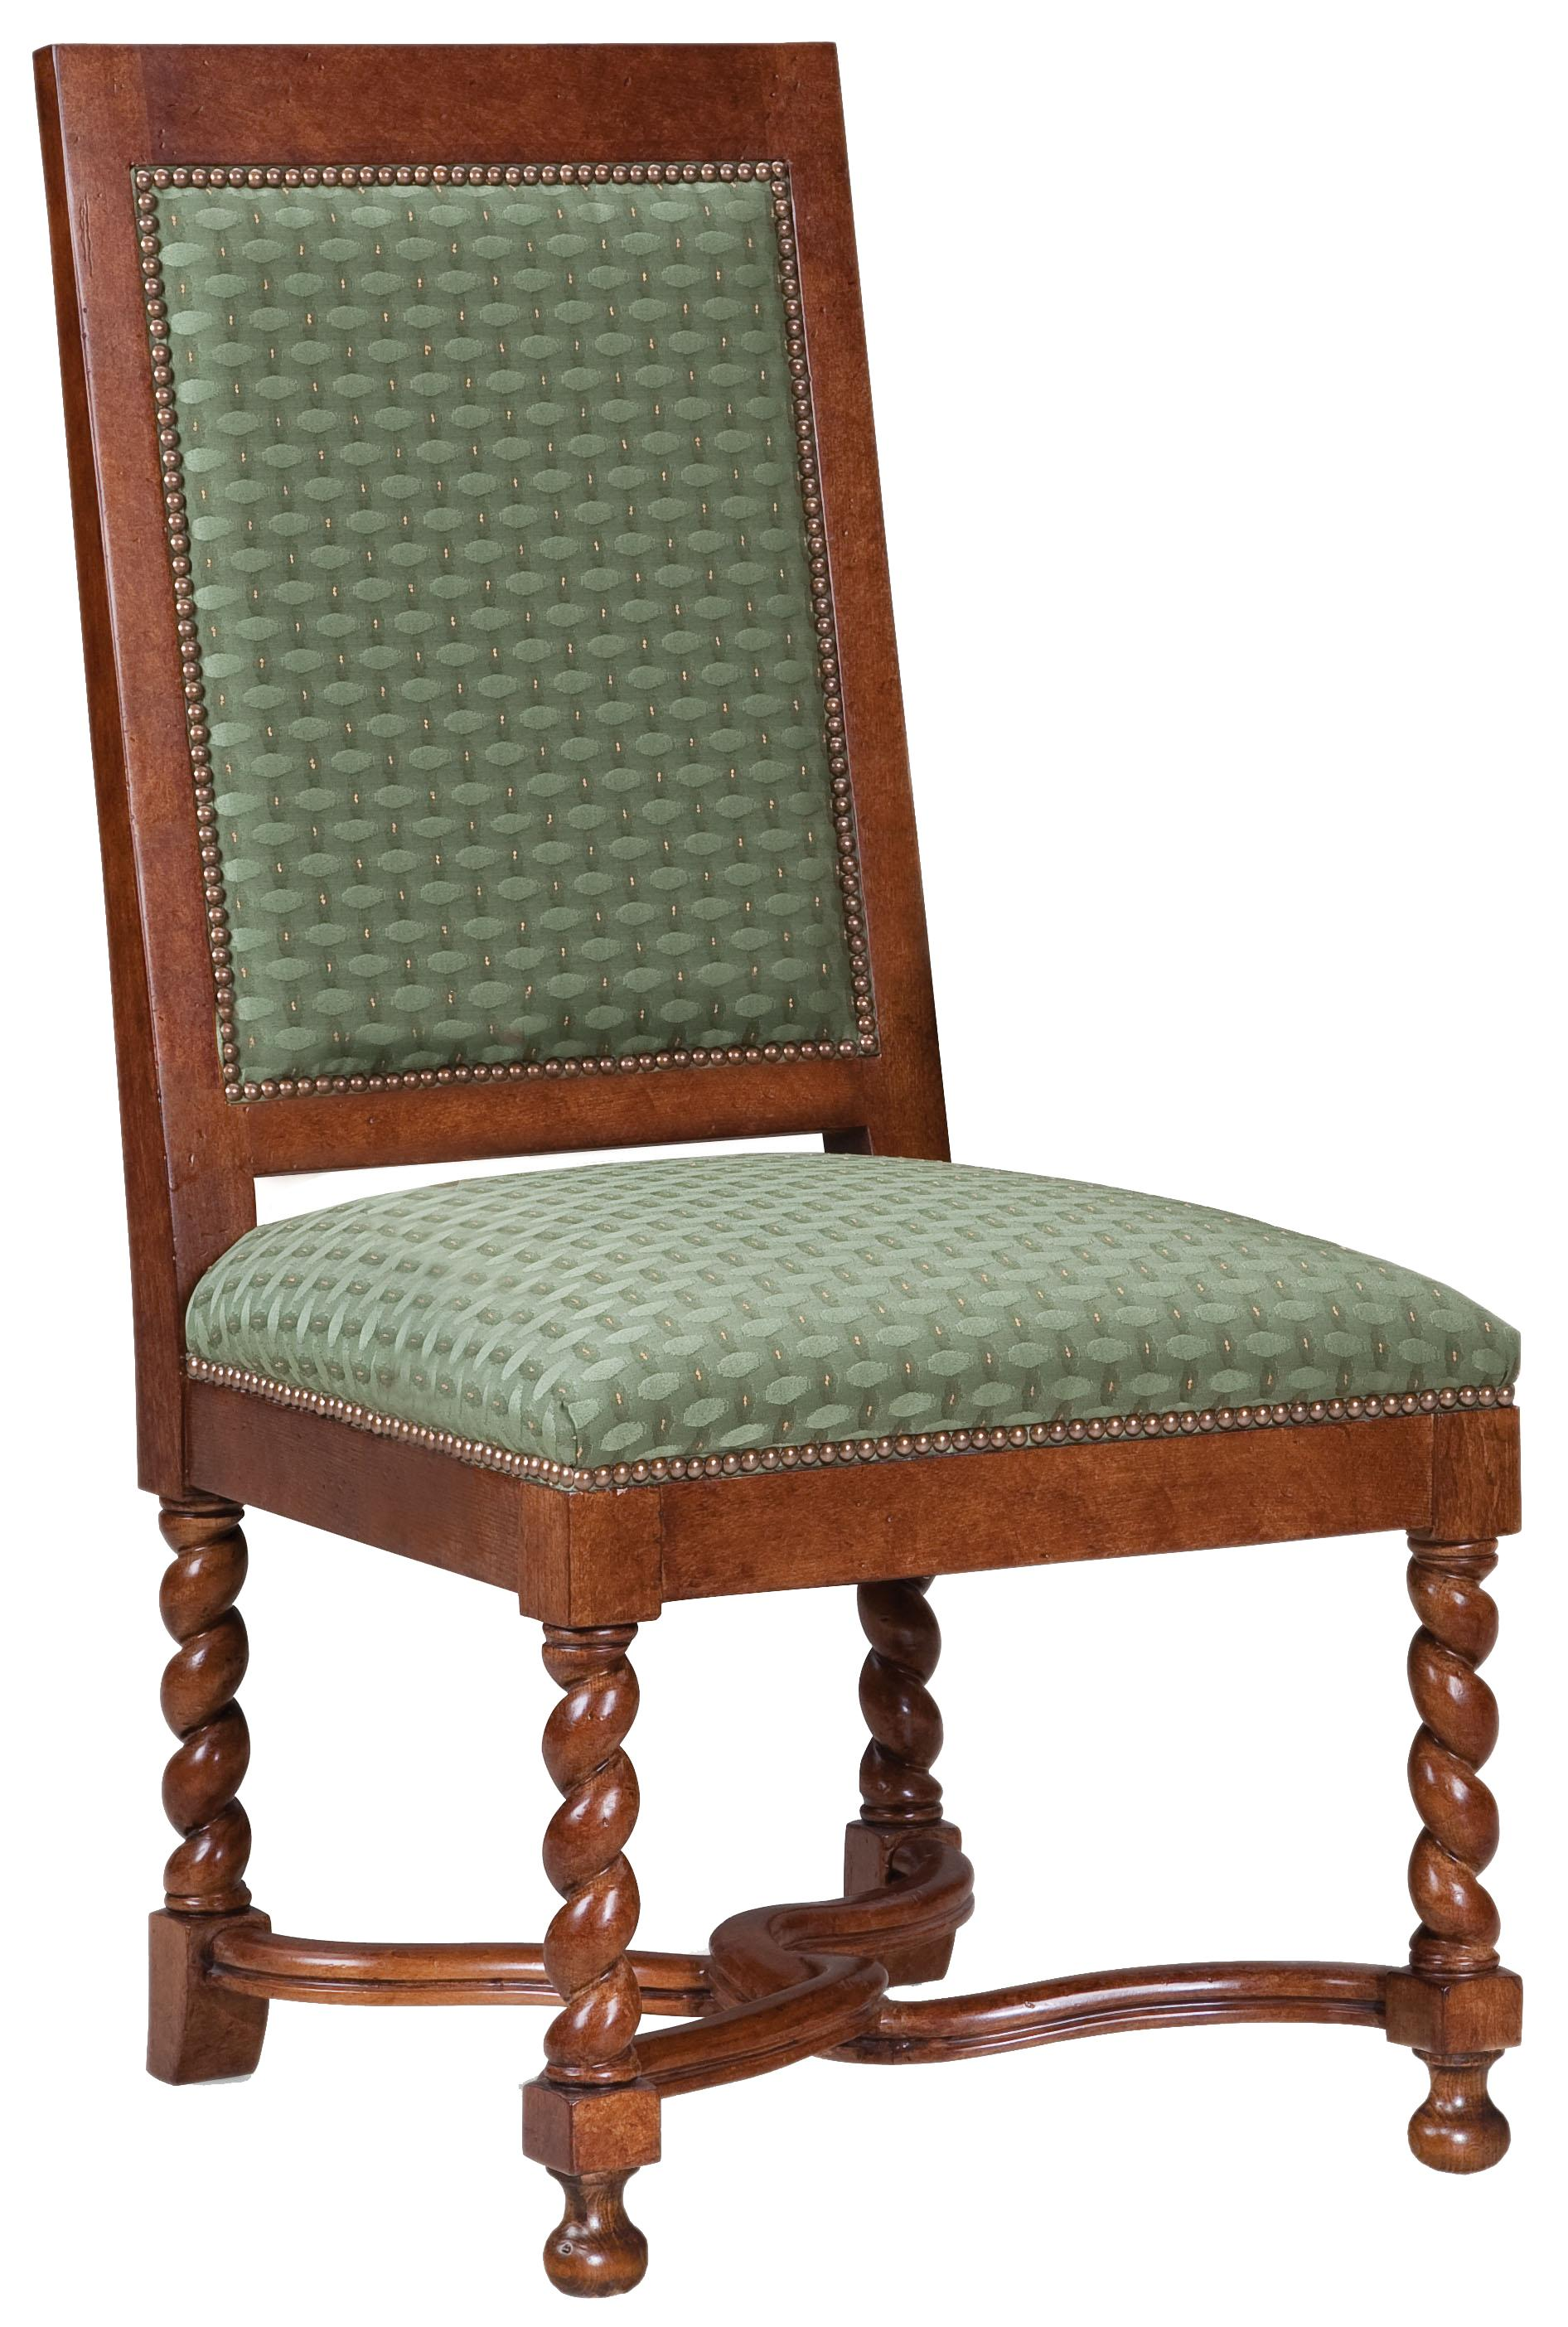 Fairfield Chairs Spiral Legged Side Chair - Item Number: 5428-05